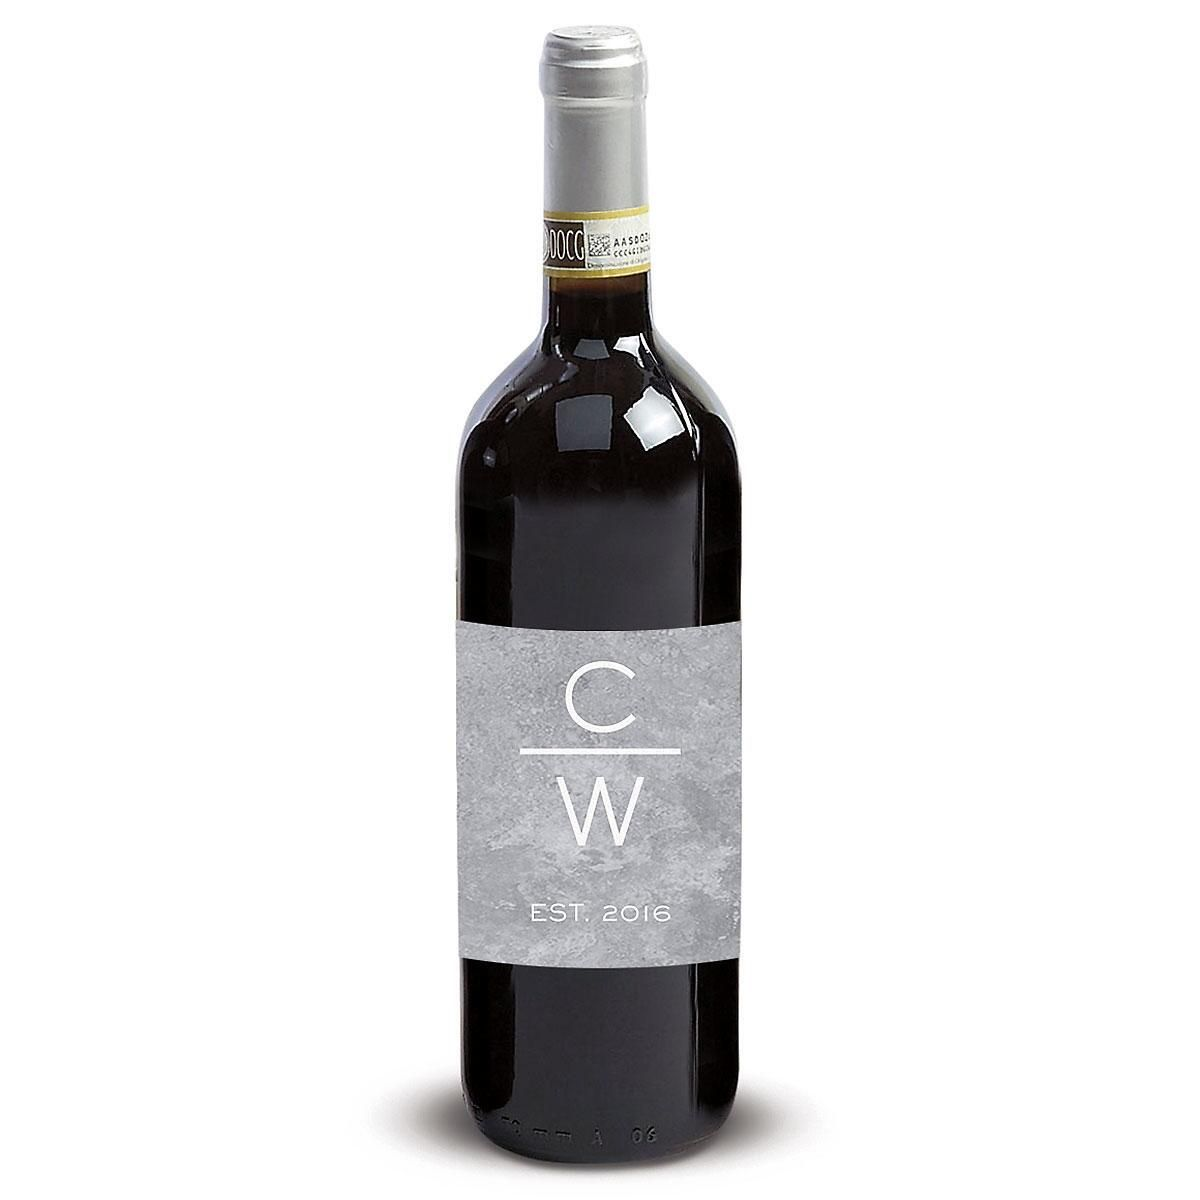 Initials with Line Wine Label